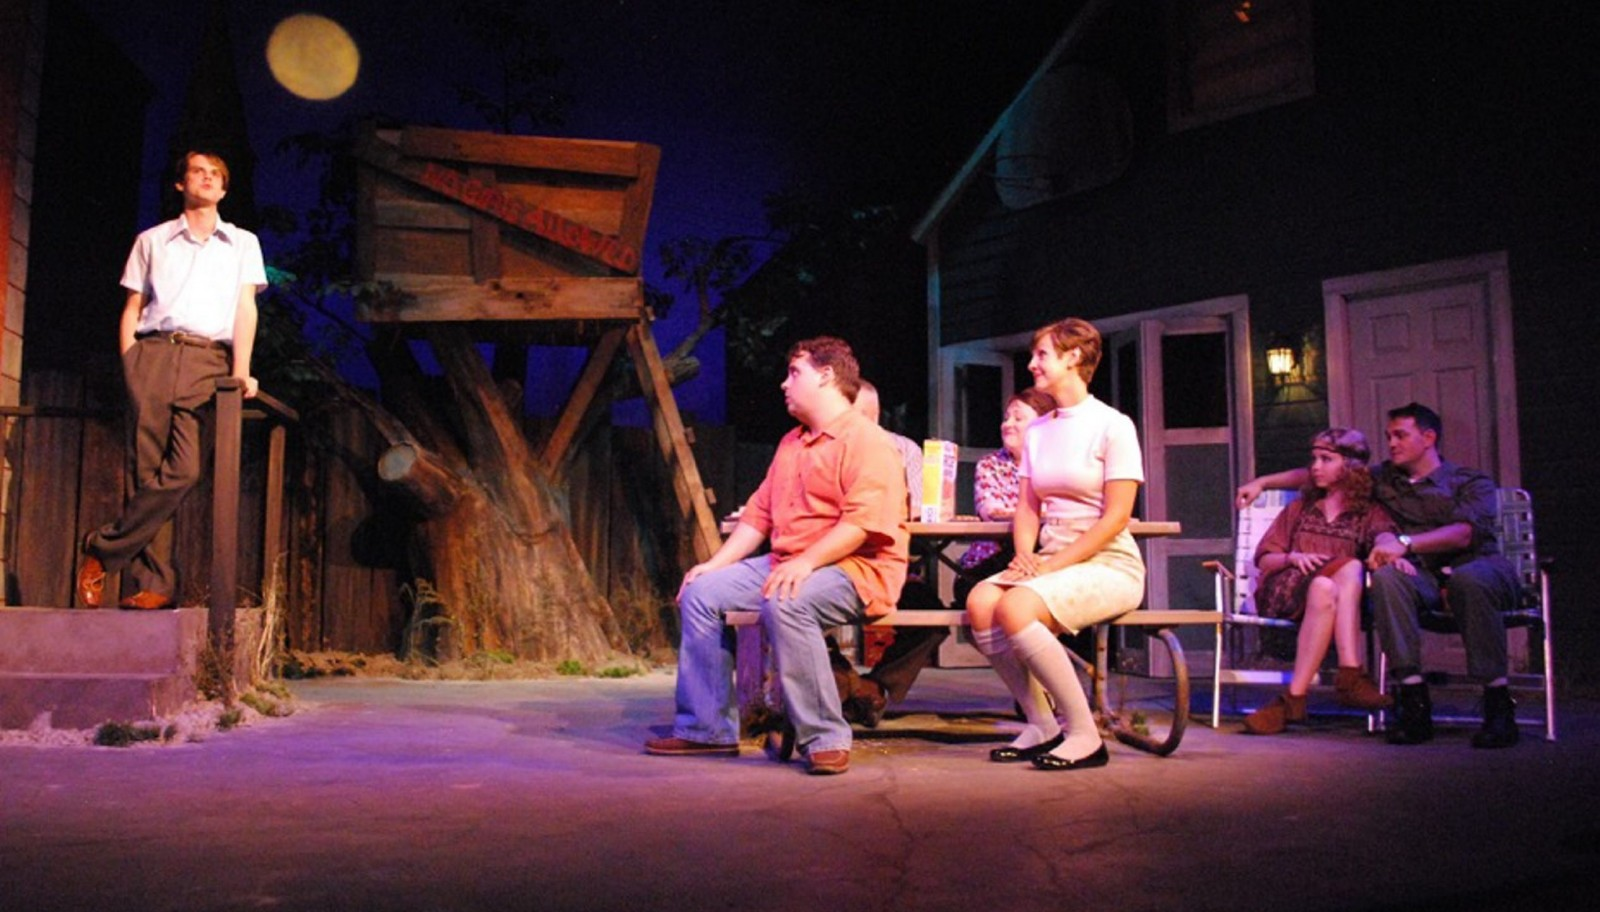 Tom Dudzick directs his play 'King o' the Moon'  in the Kavinoky Theatre.